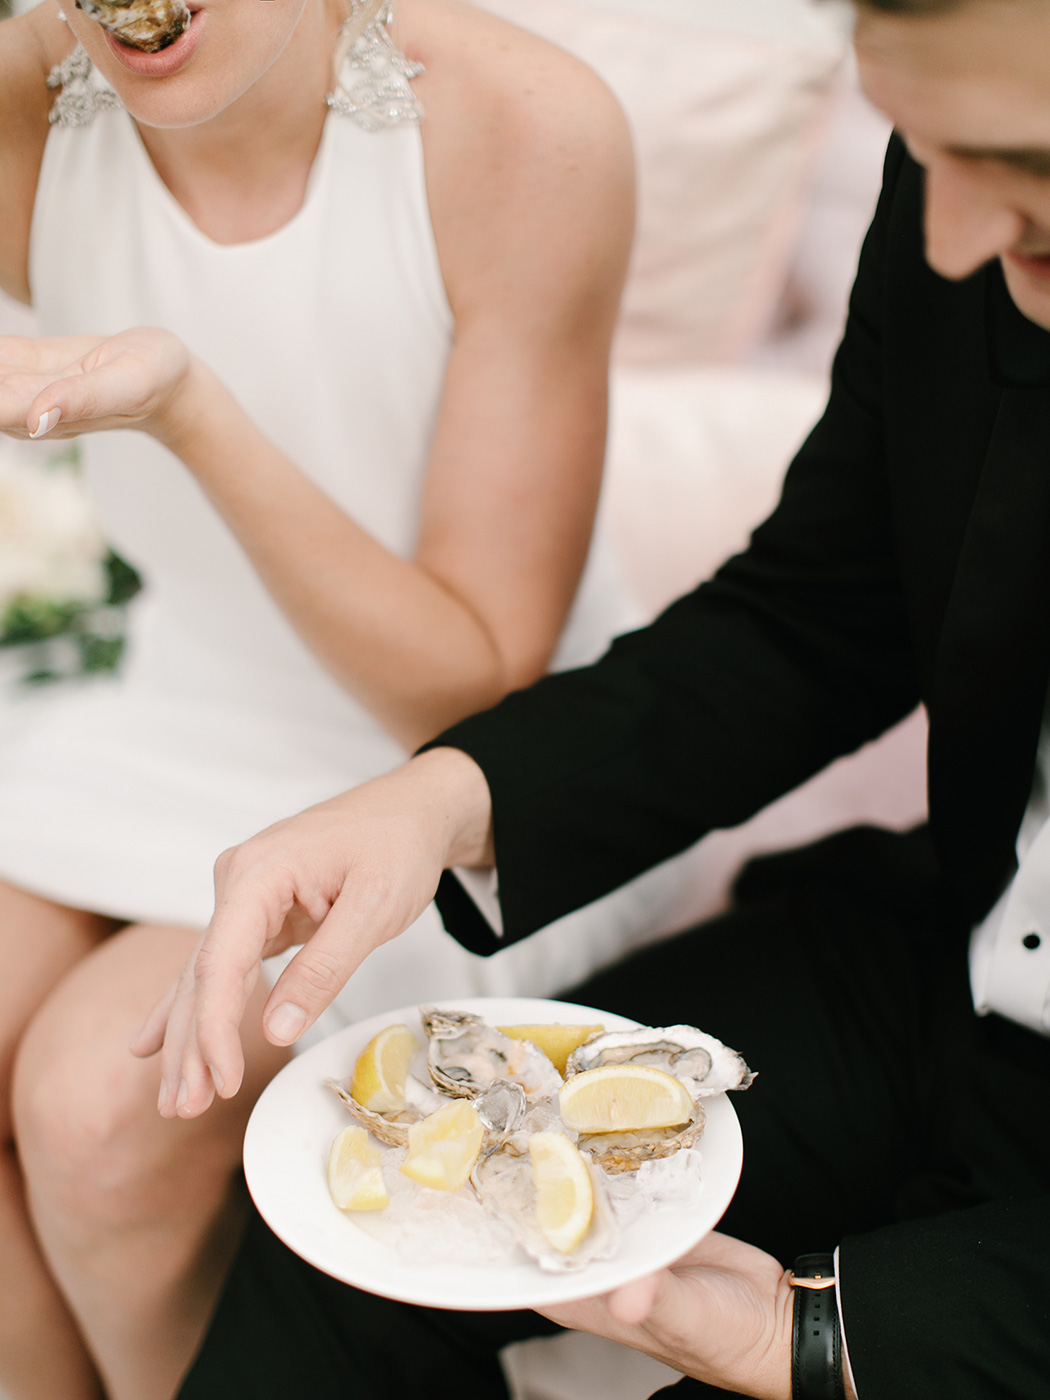 Wedding Canapé | Rensche Mari Photography